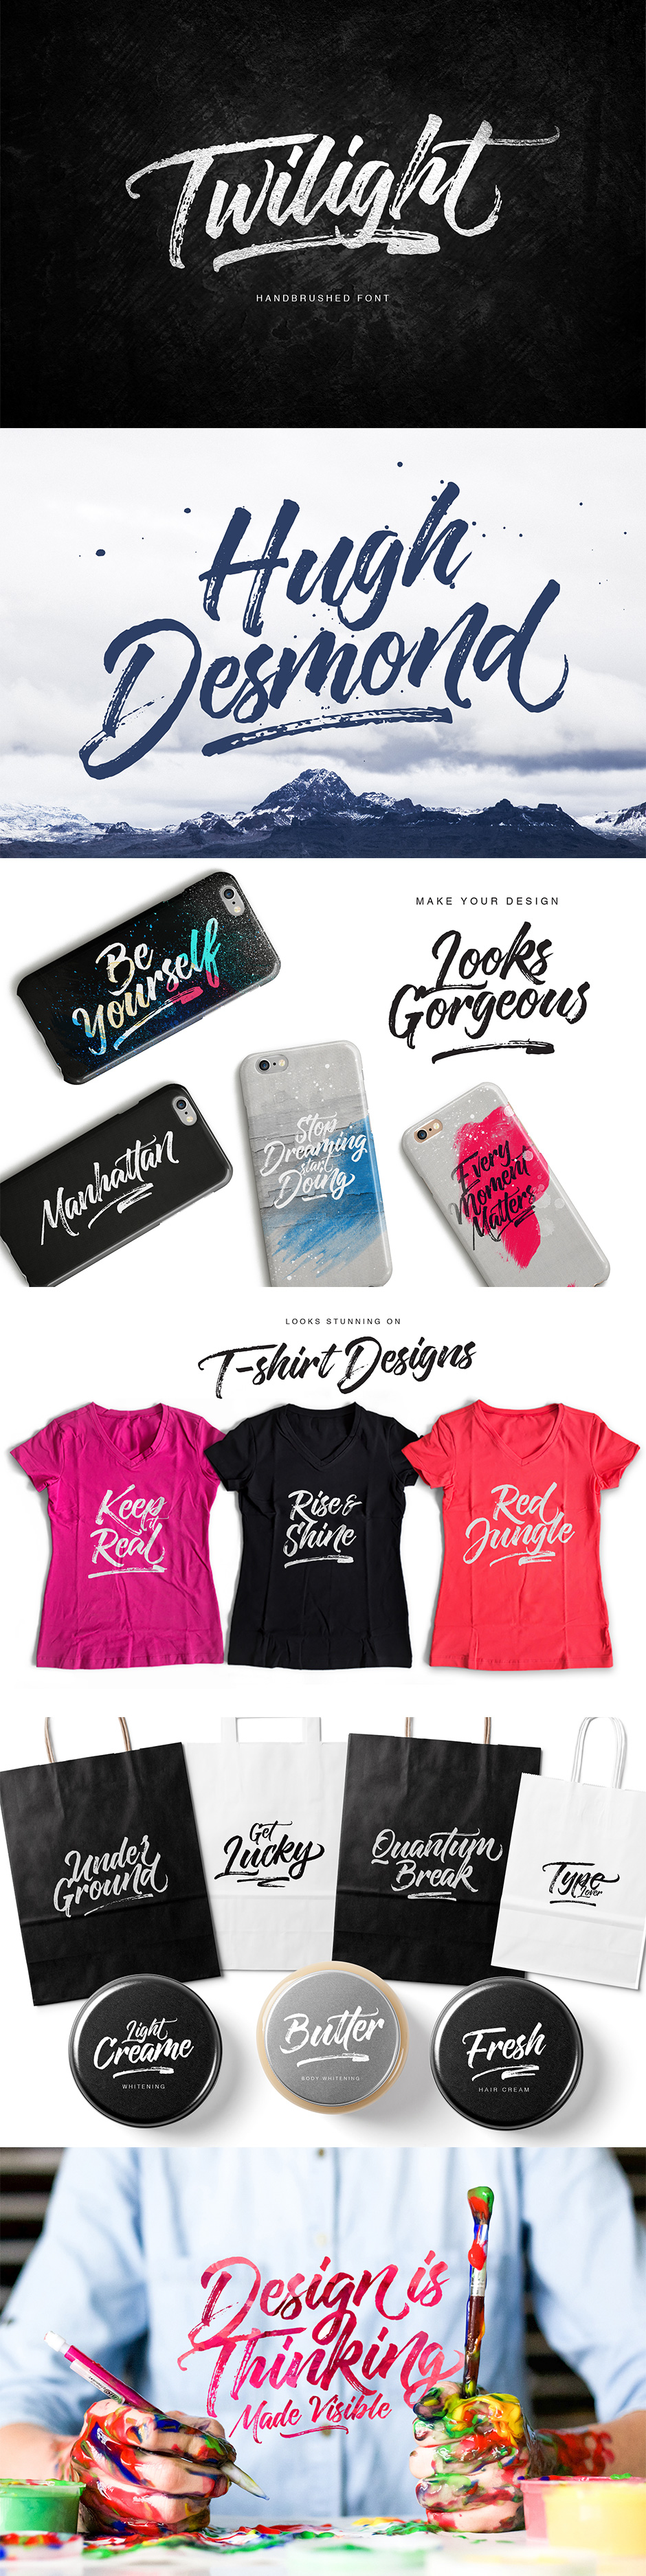 The Type Lover's Bundle